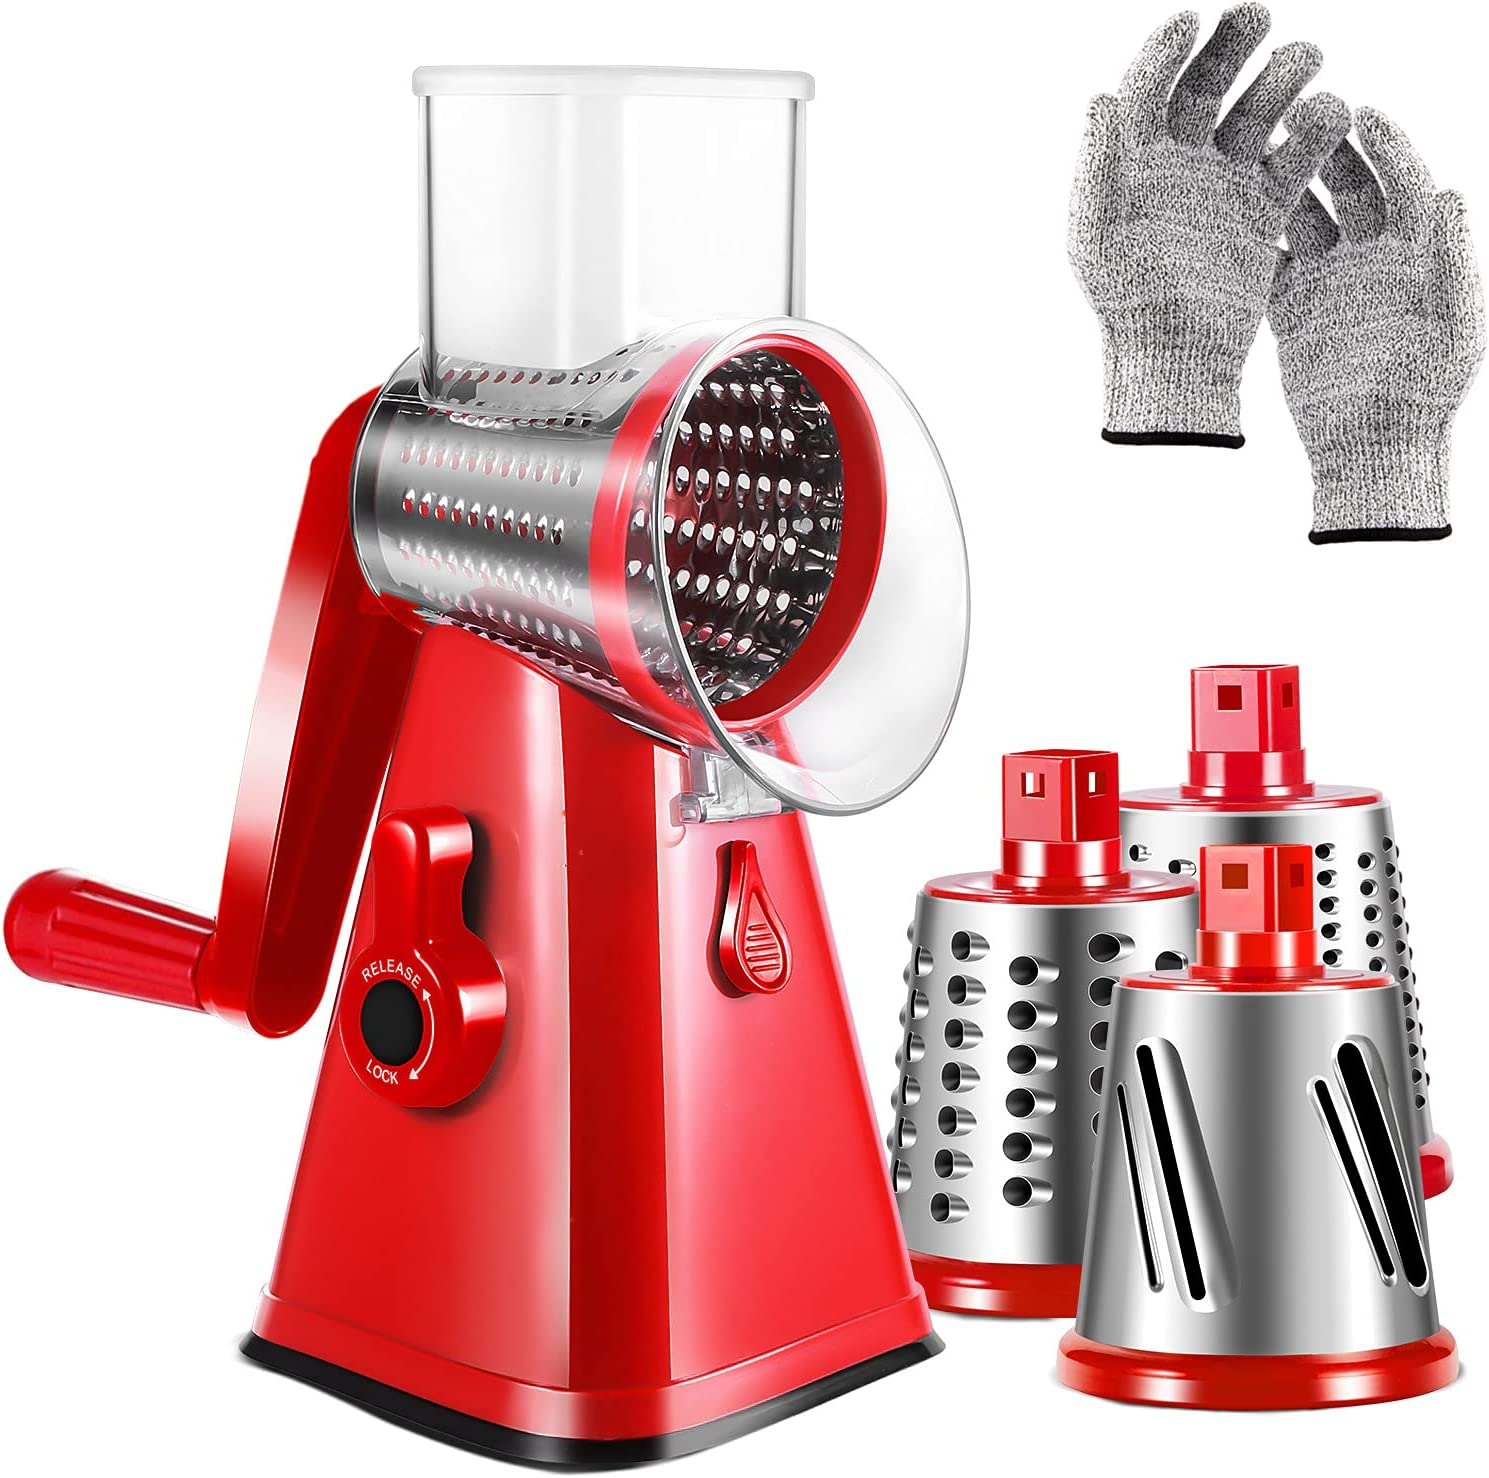 Rotary Cheese Grater, 3-in-1 Kitchen Mandoline Vegetable Slicer with Interchangeable Stainless Steel Drum Blades Rotary Grater Slicer for Vegetable fruit Nuts Grinder Cheese Shredder,Easy to Clean